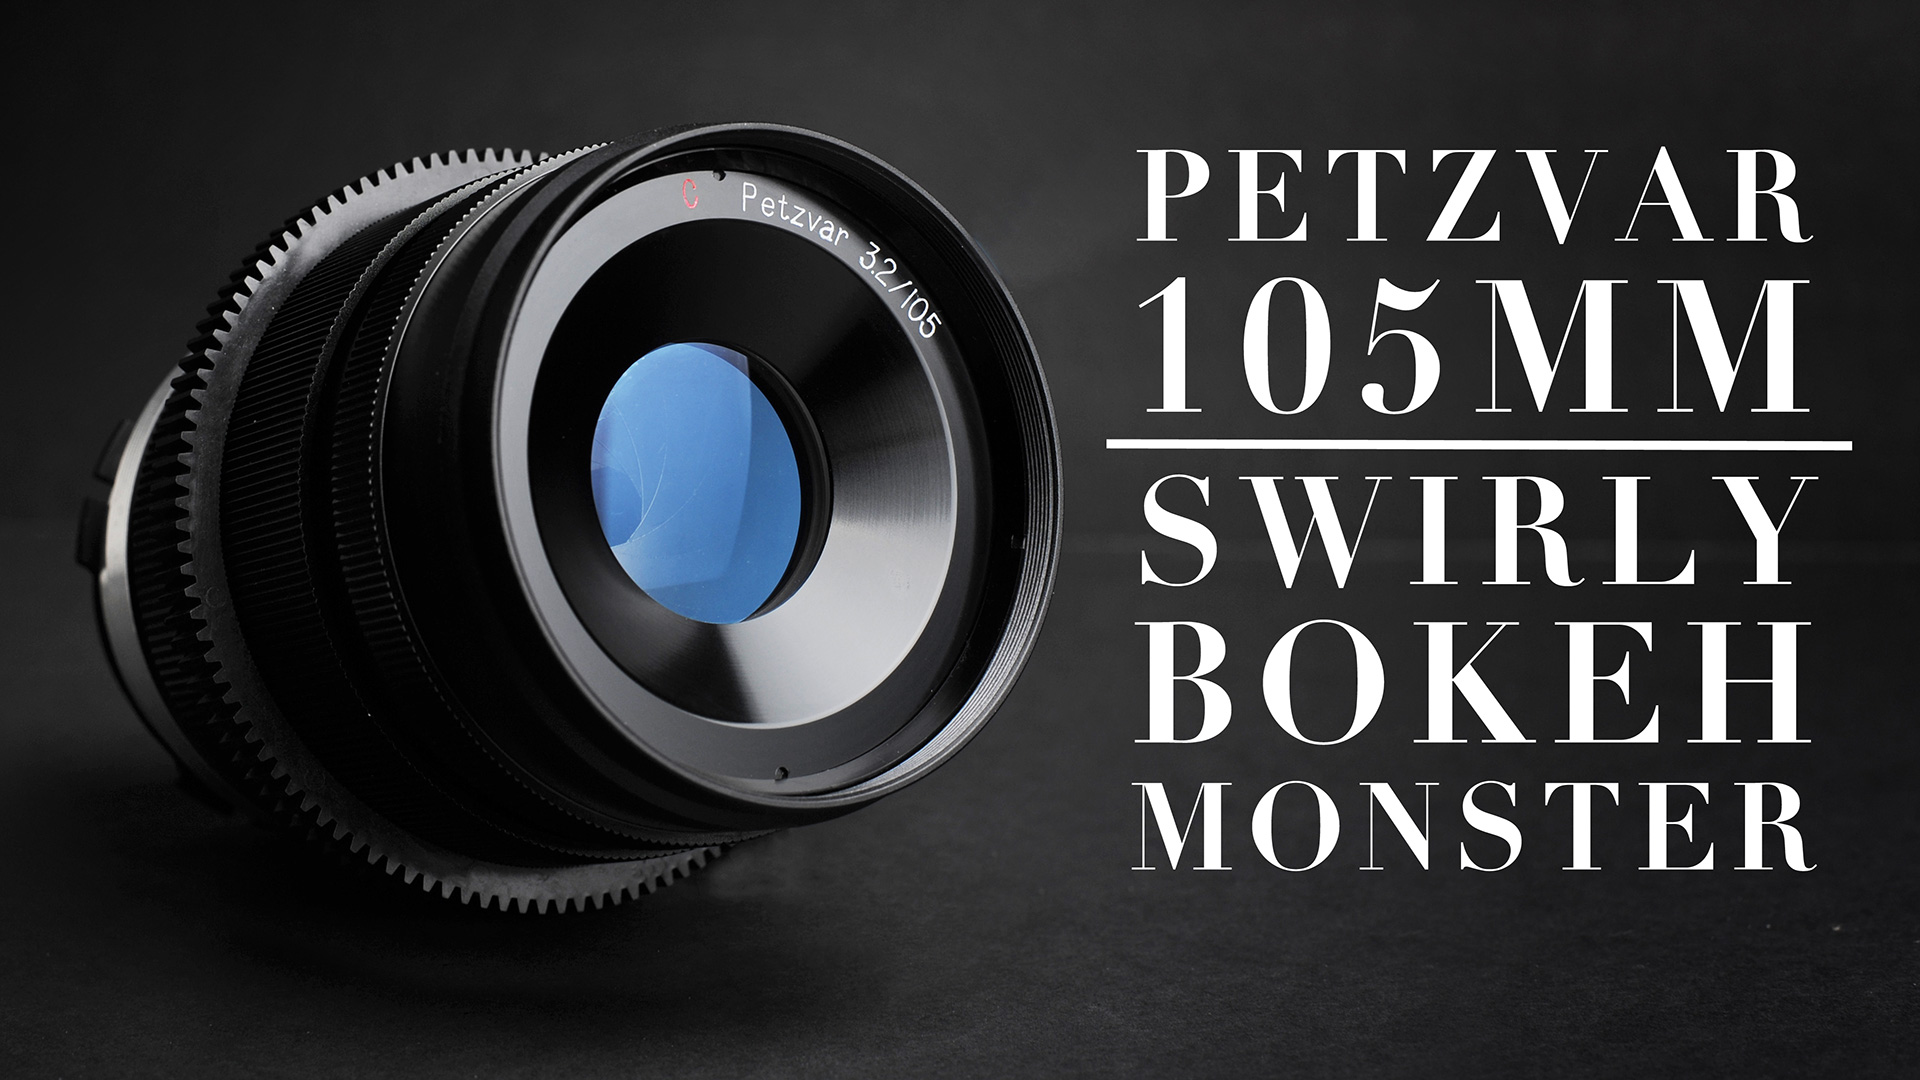 PETZVAR 105mm F3.2 PL Mount Lens | Swirly Bokeh Monster